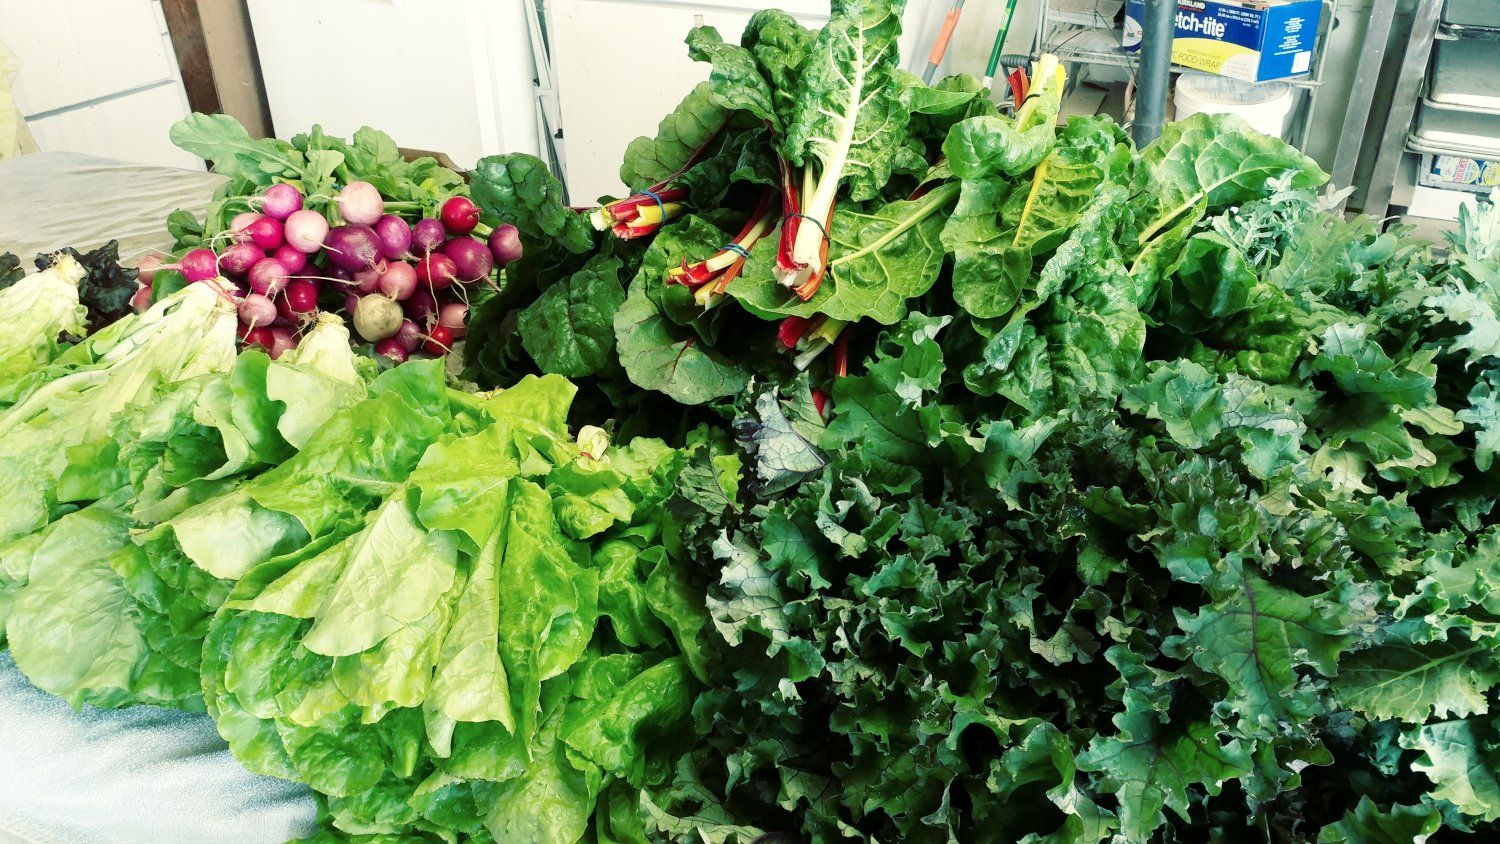 Next Happening: Few more spots for Farm share signups